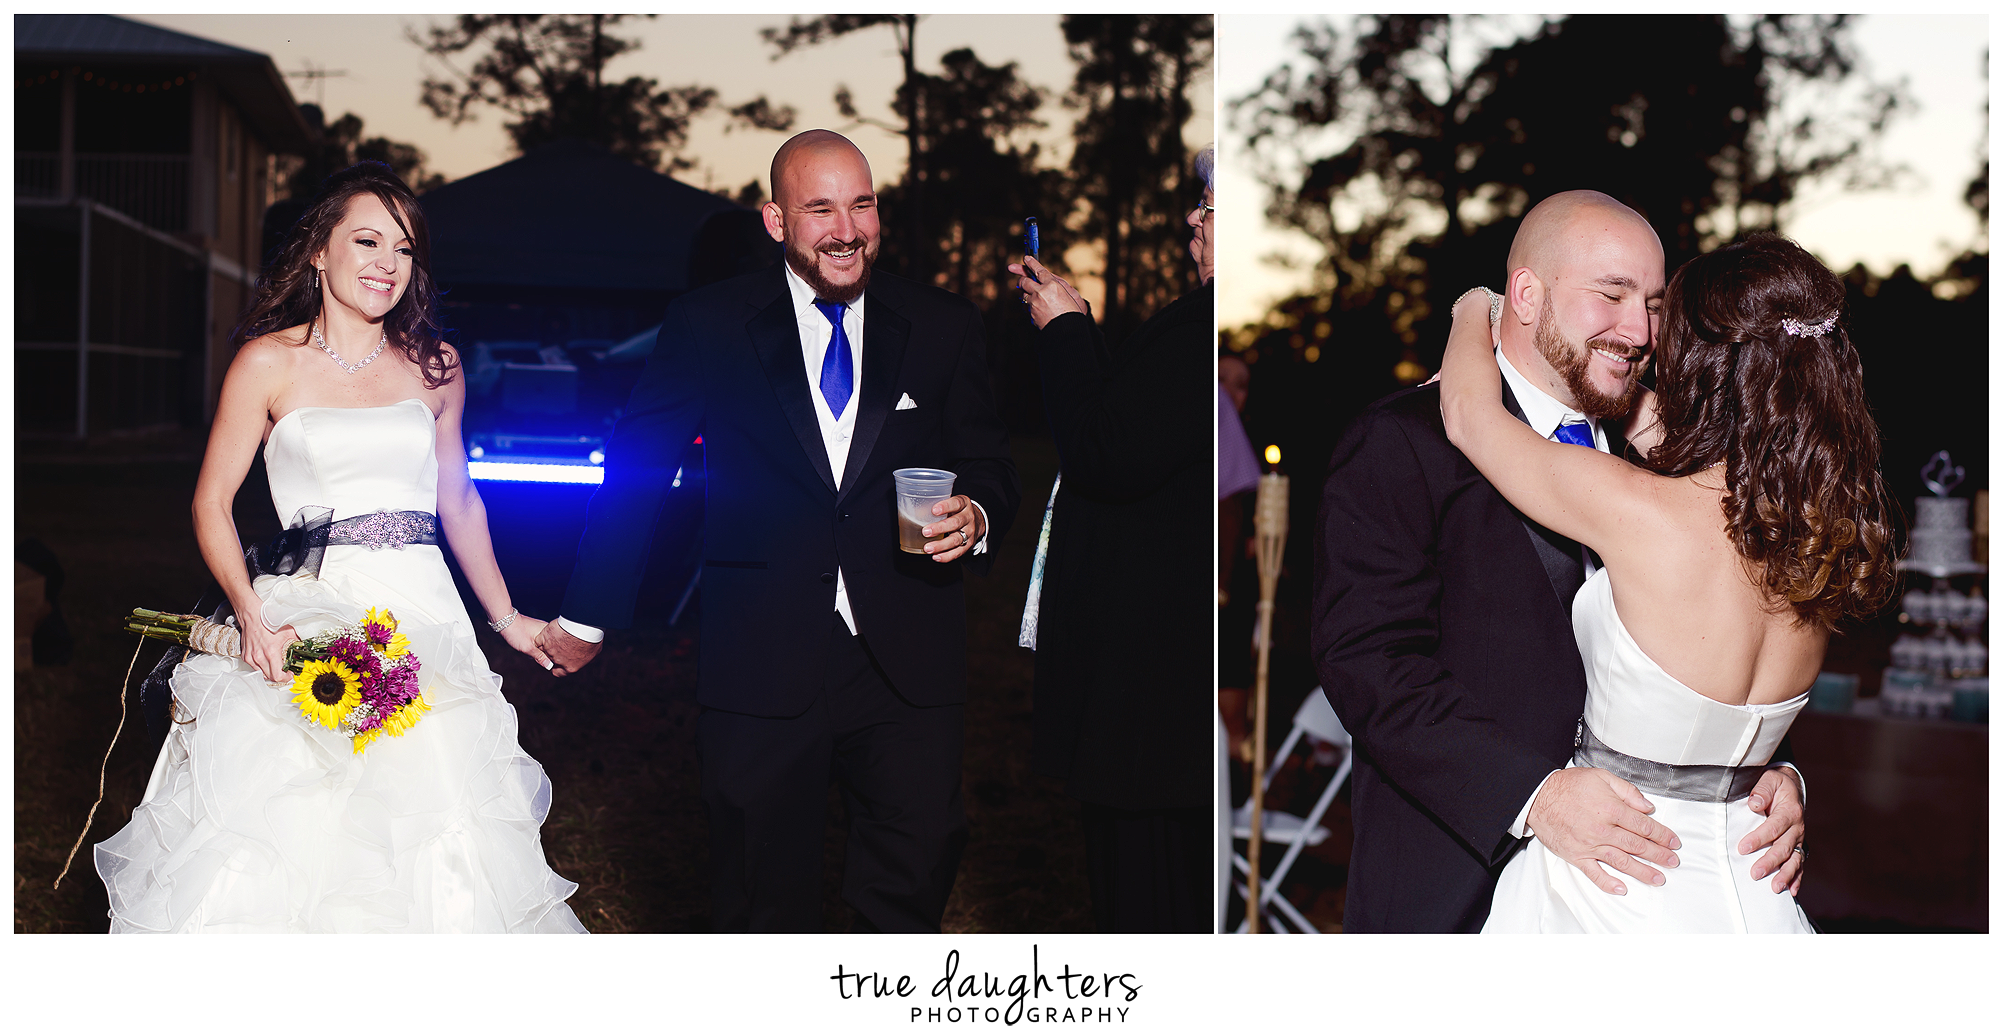 True_Daughters_Photography_Campitelli_Wedding-33.png